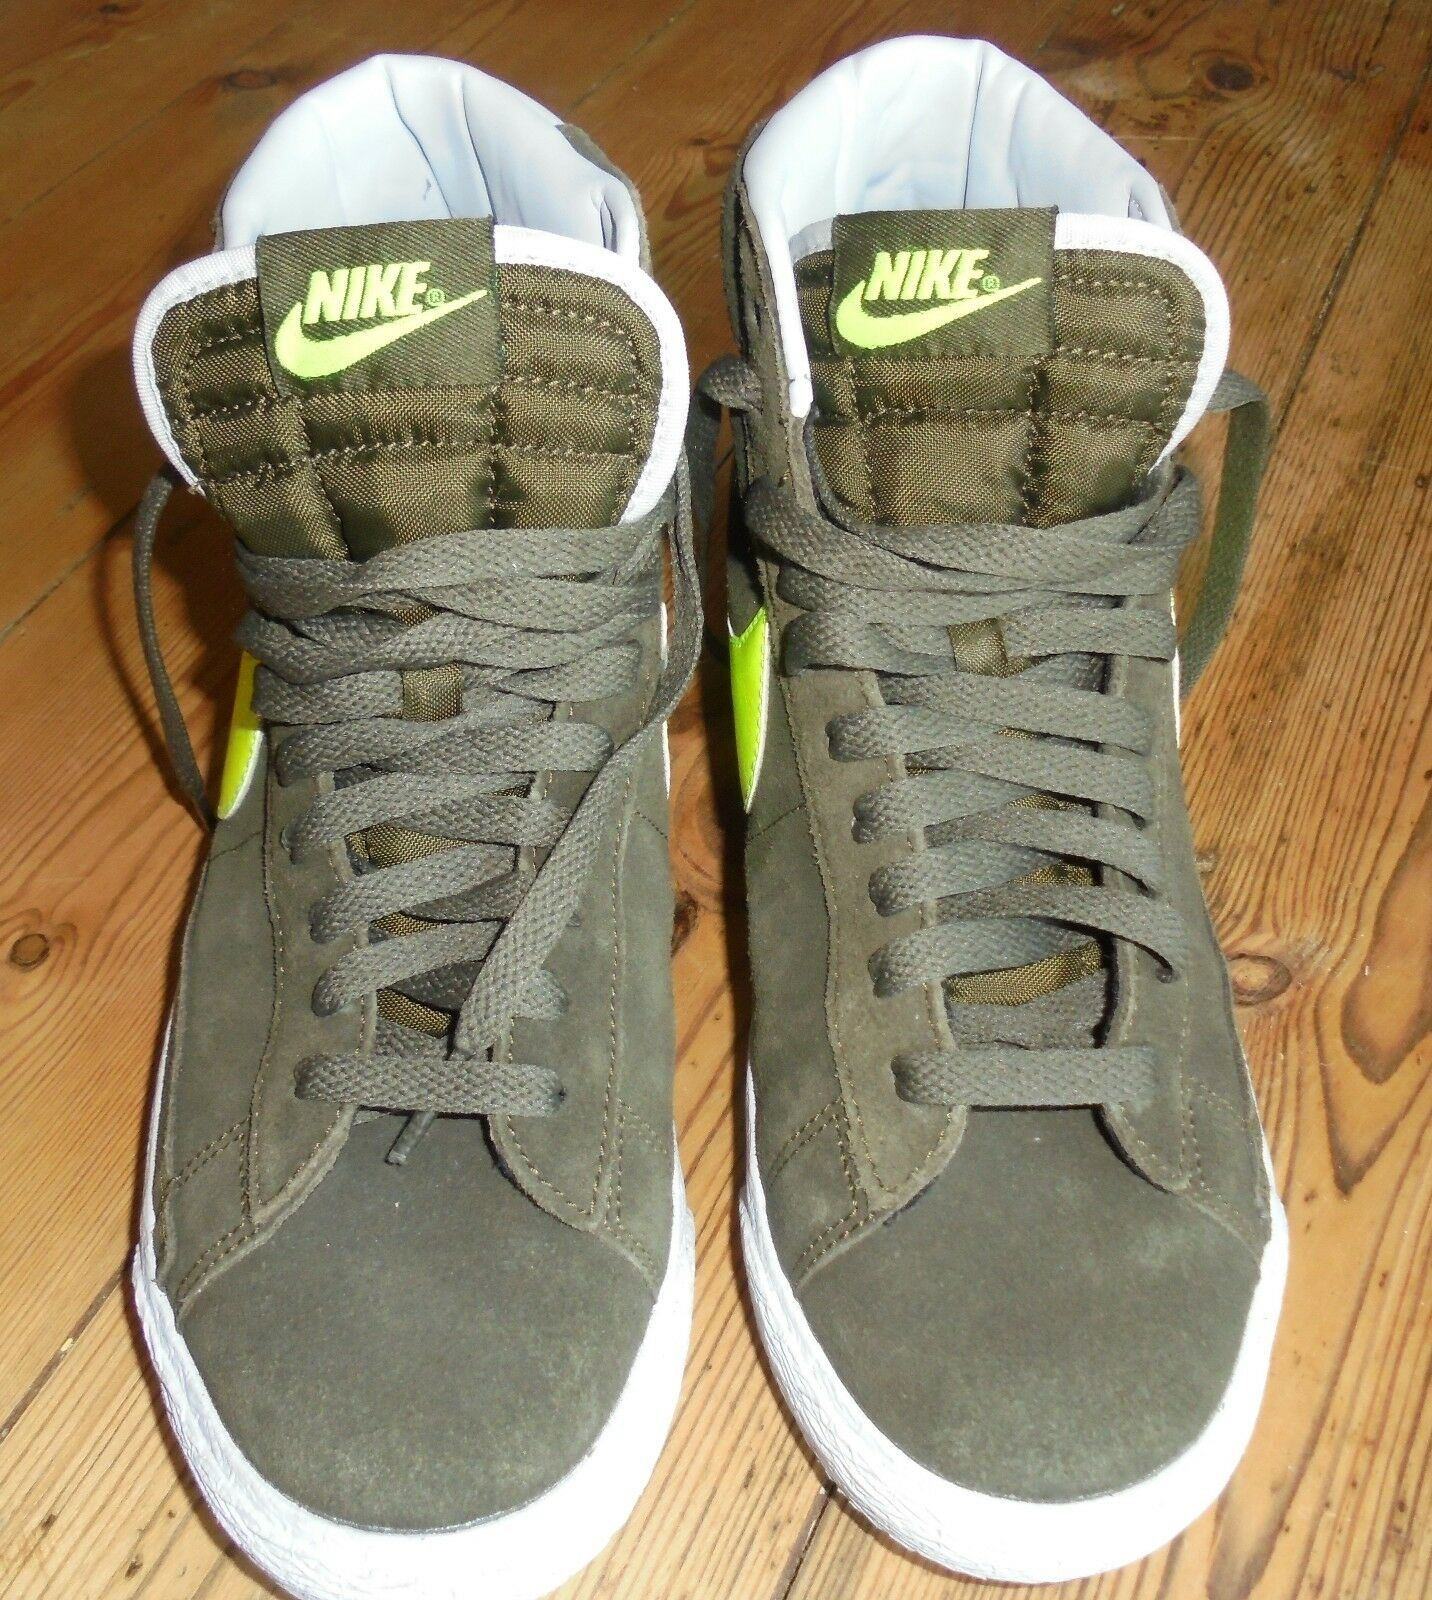 NIKE TRAINERS - HIGH TOP - SIZE 5.5 dark sagey green Great discount